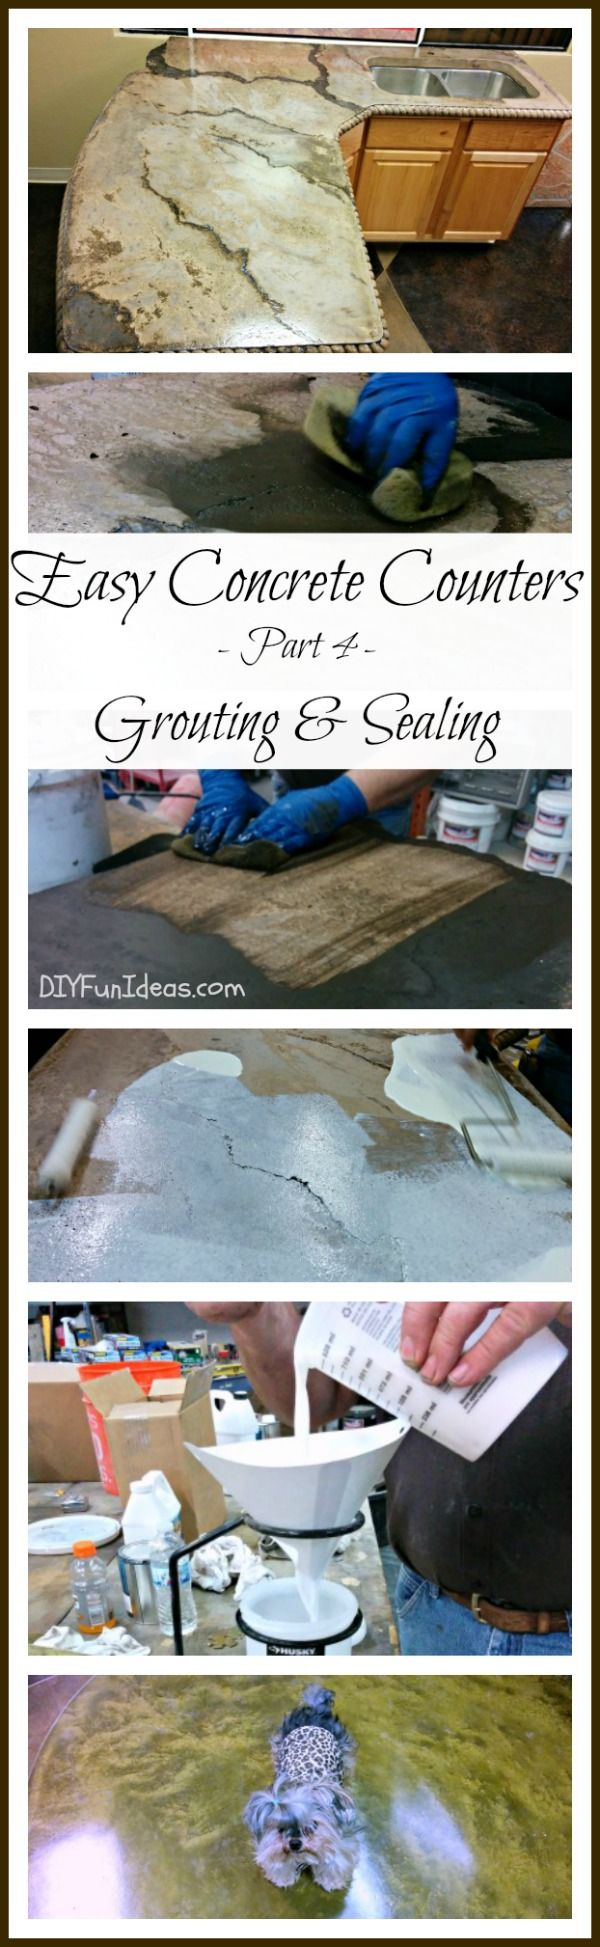 Best Grout Sealer For Kitchen Floor 17 Best Ideas About Sealing Grout On Pinterest Grout Sealer